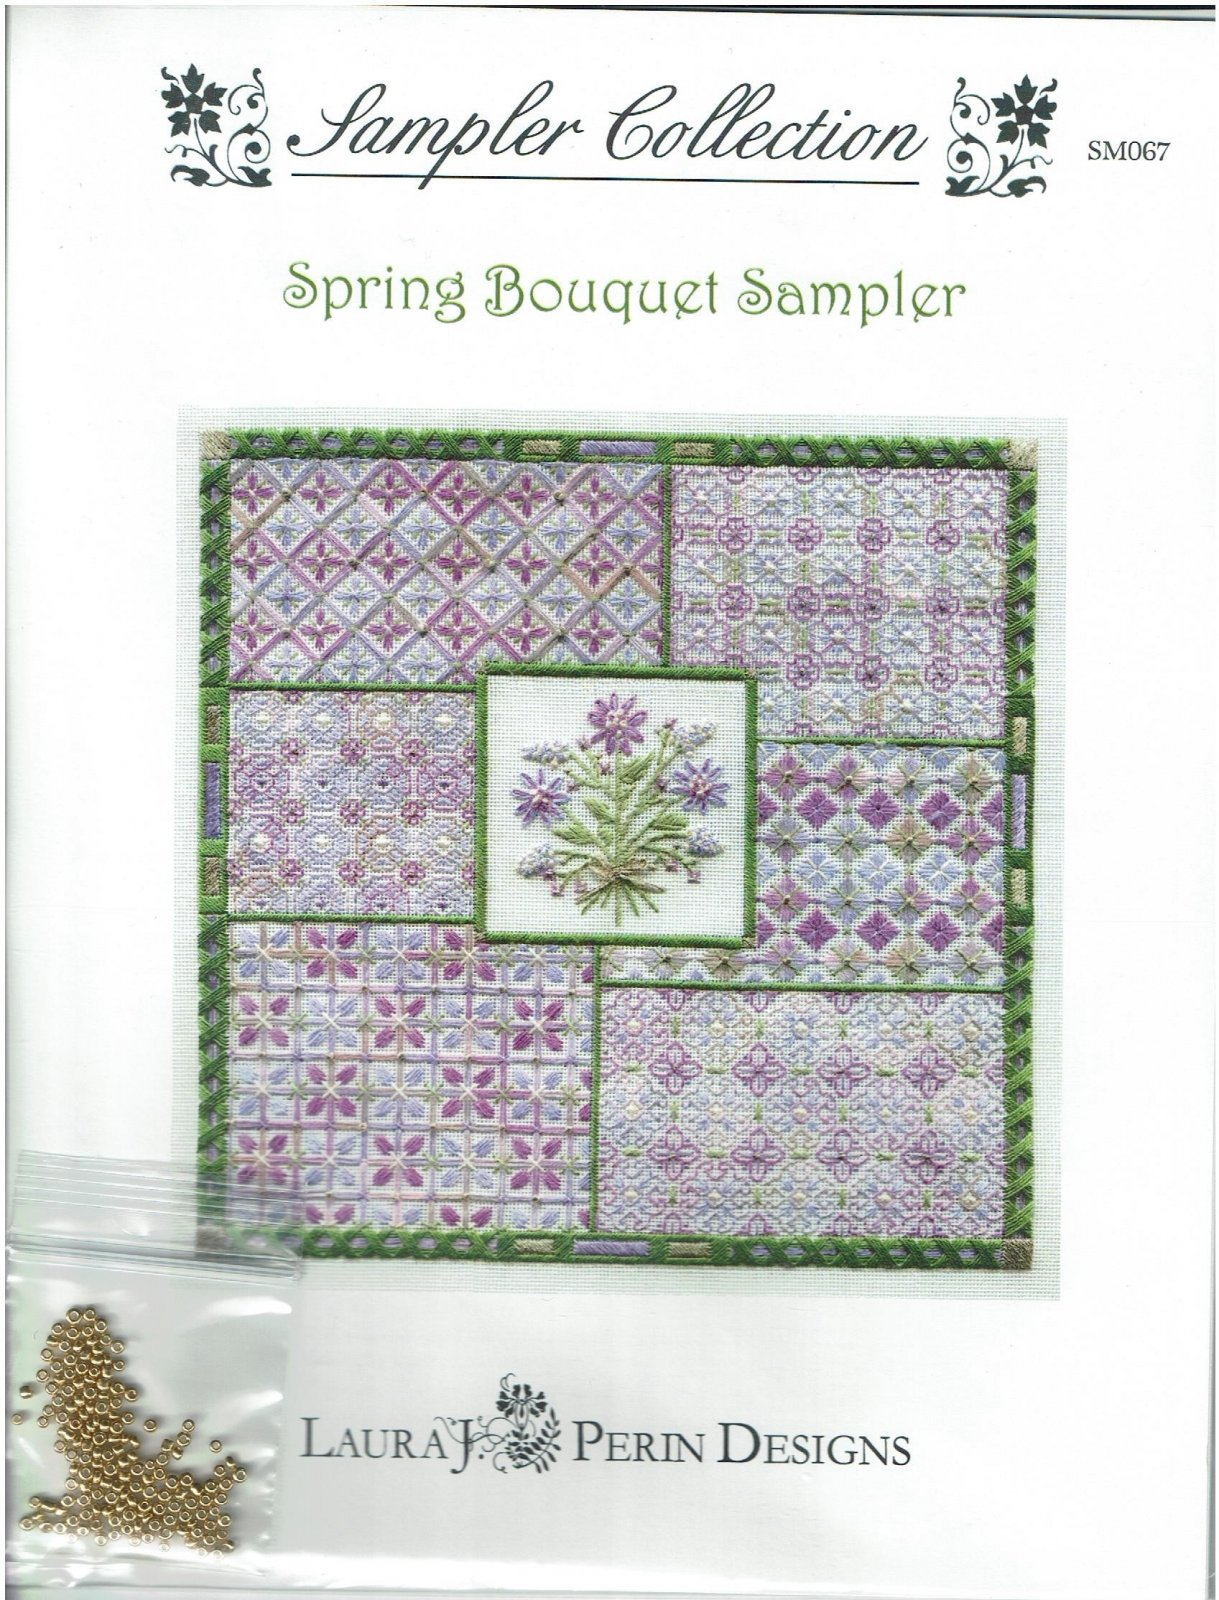 Spring Bouquet Sampler by Laura J Perin